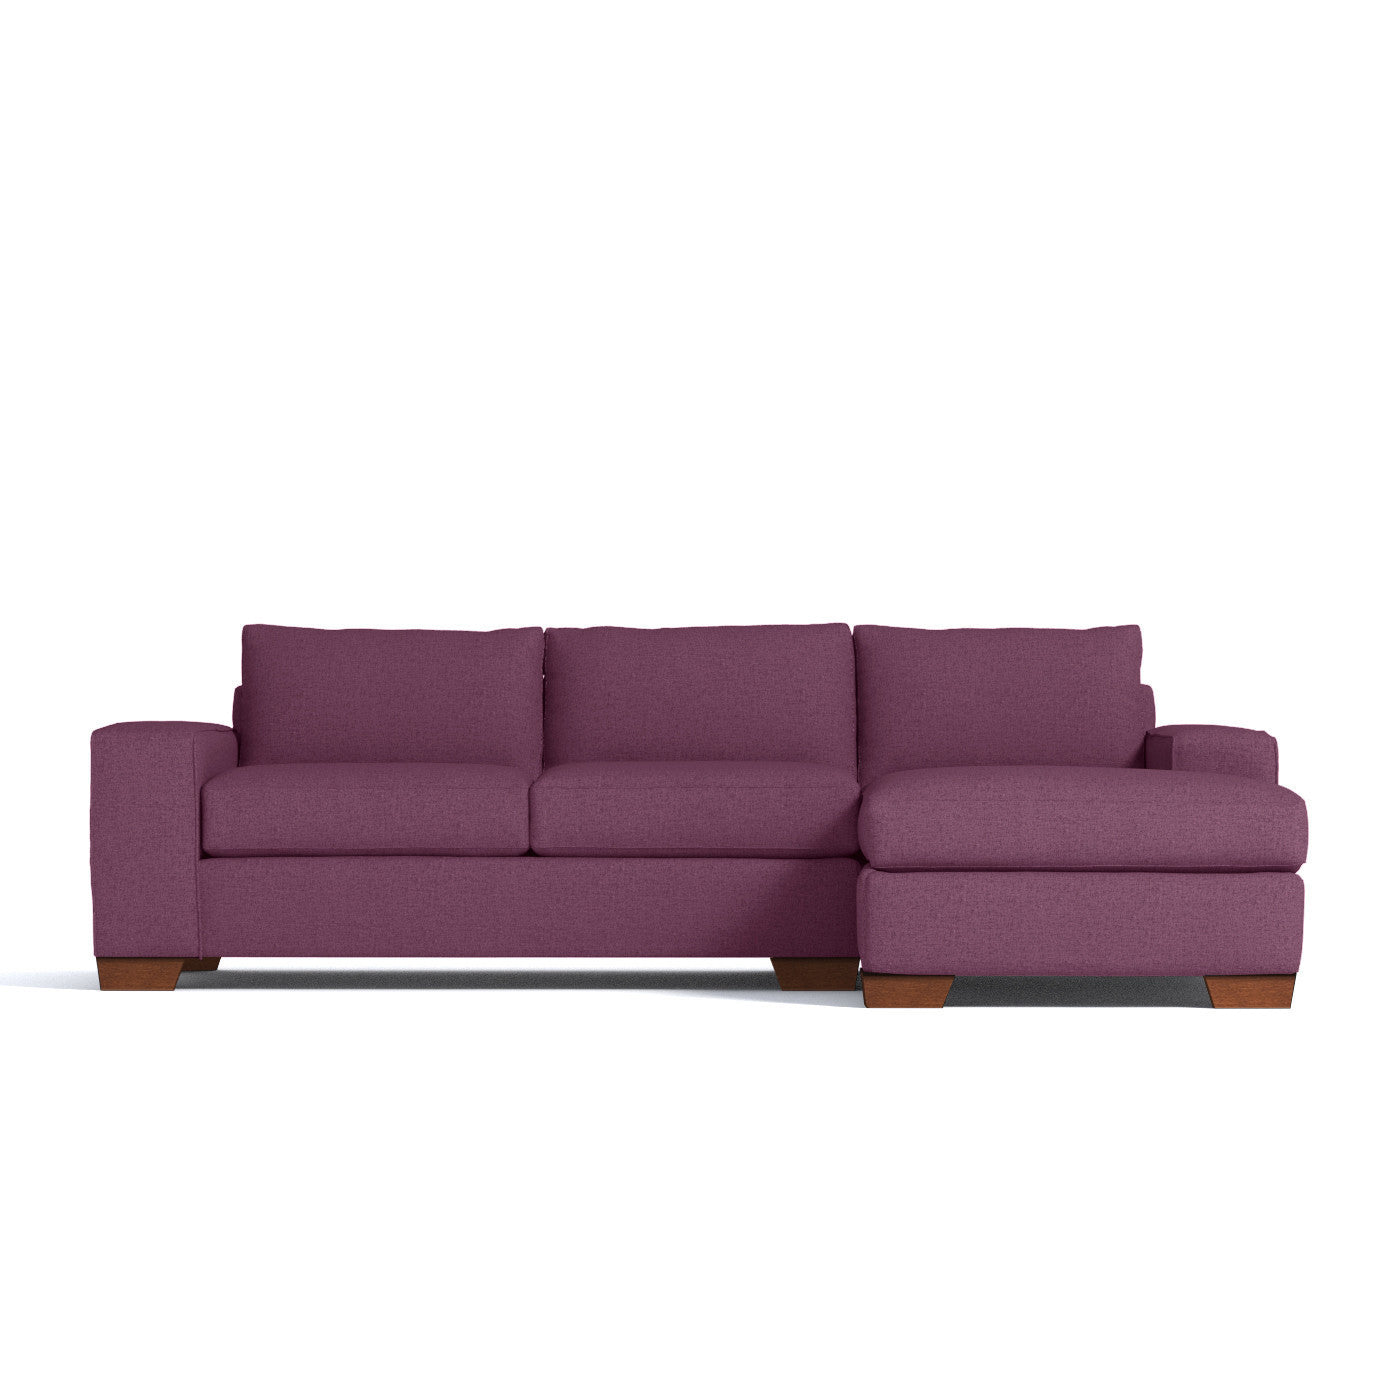 Melrose 2pc Sectional Sofa